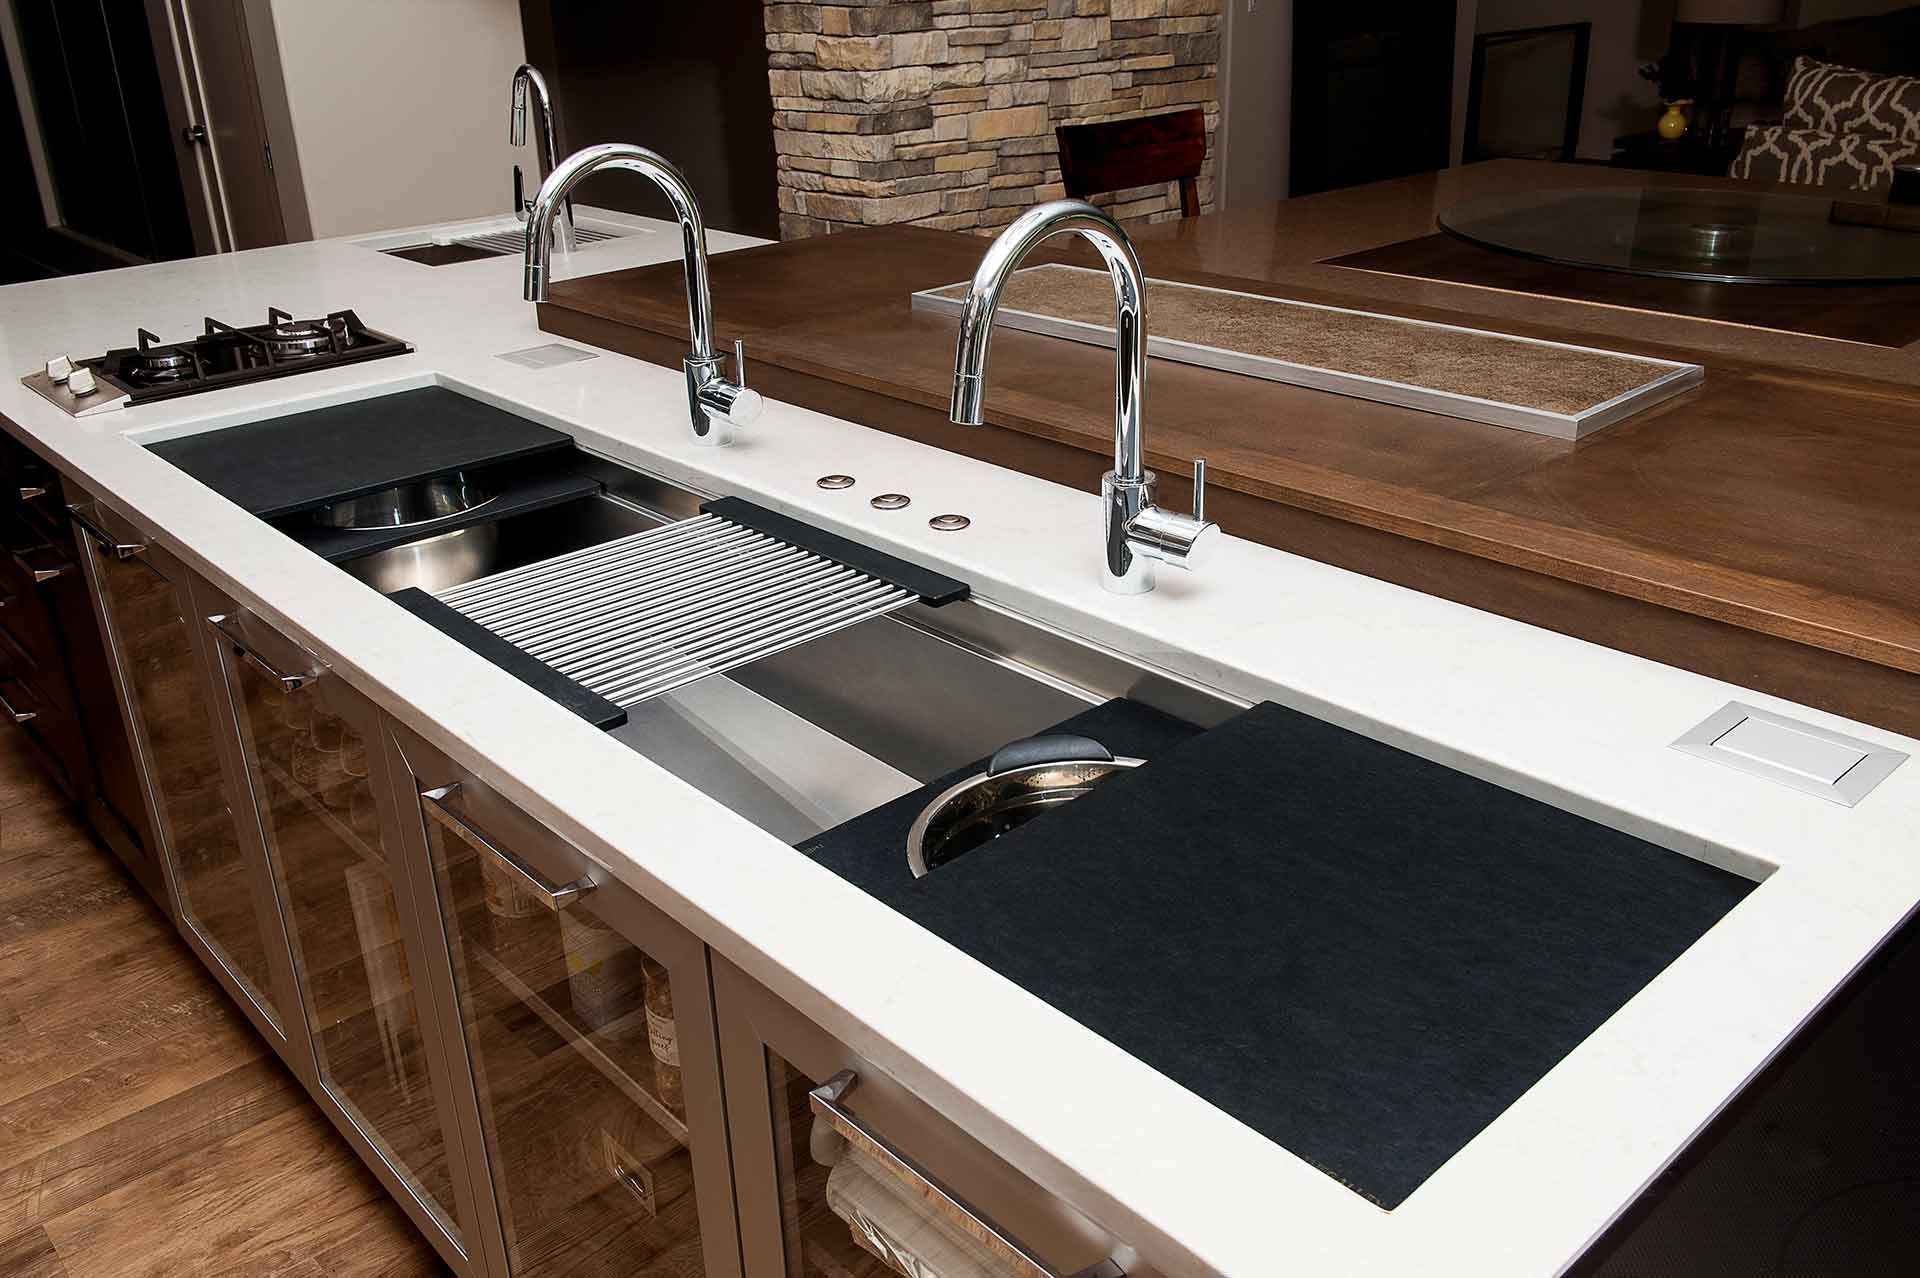 Iws 7 large stainless steel kitchen sink graphite wood composite culinary kit